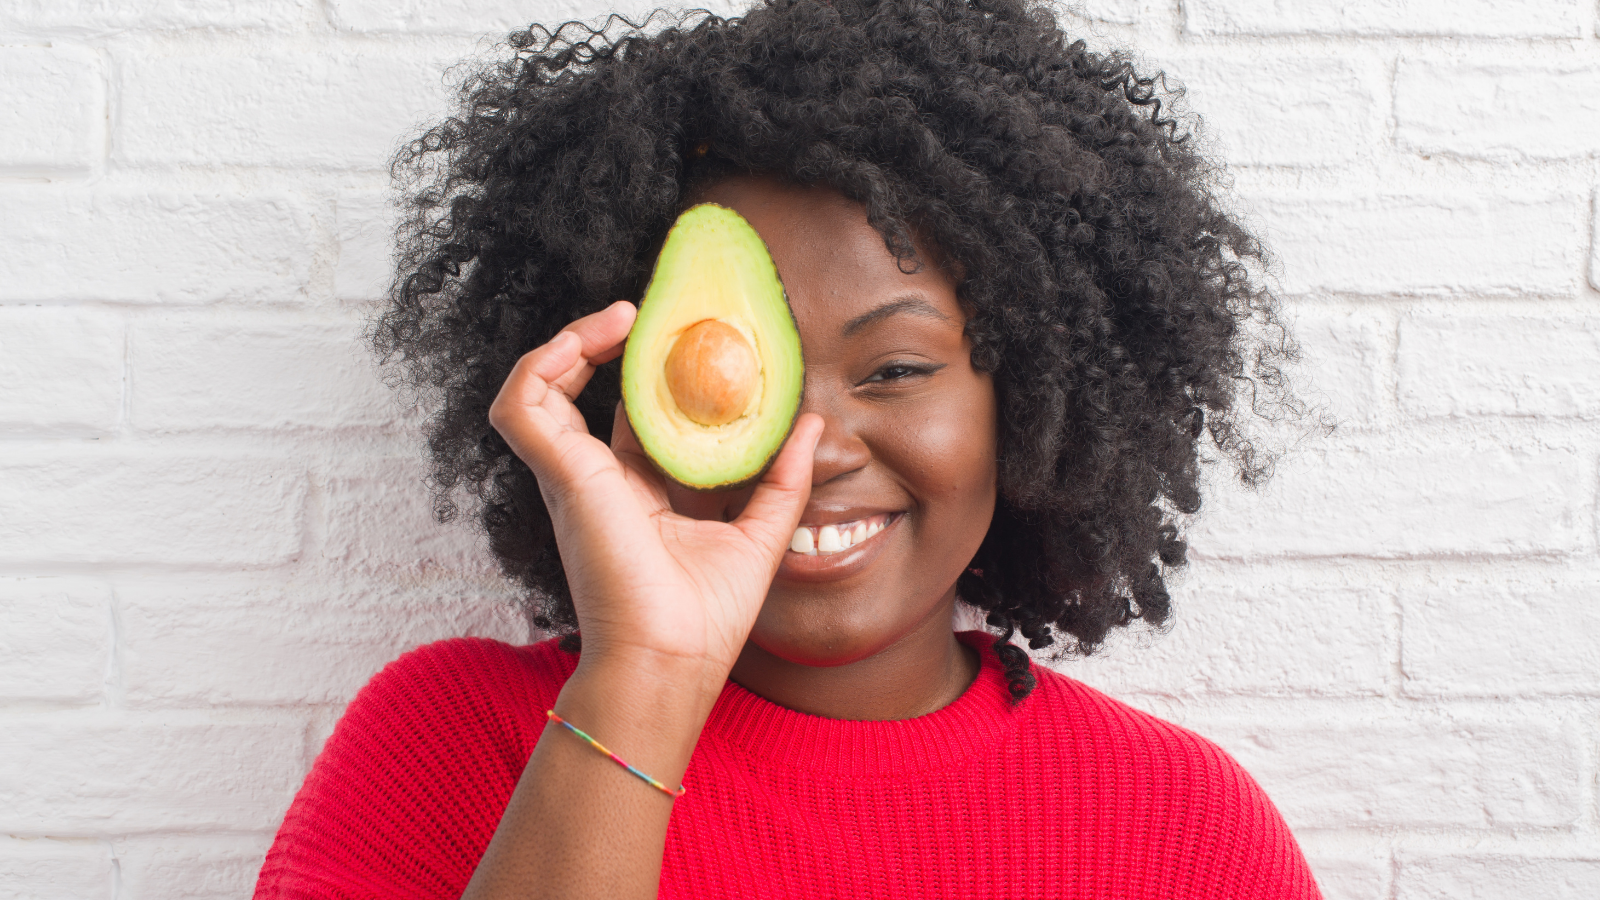 Young woman by white brick wall eating avocado with a happy face standing and smiling with a confident smile